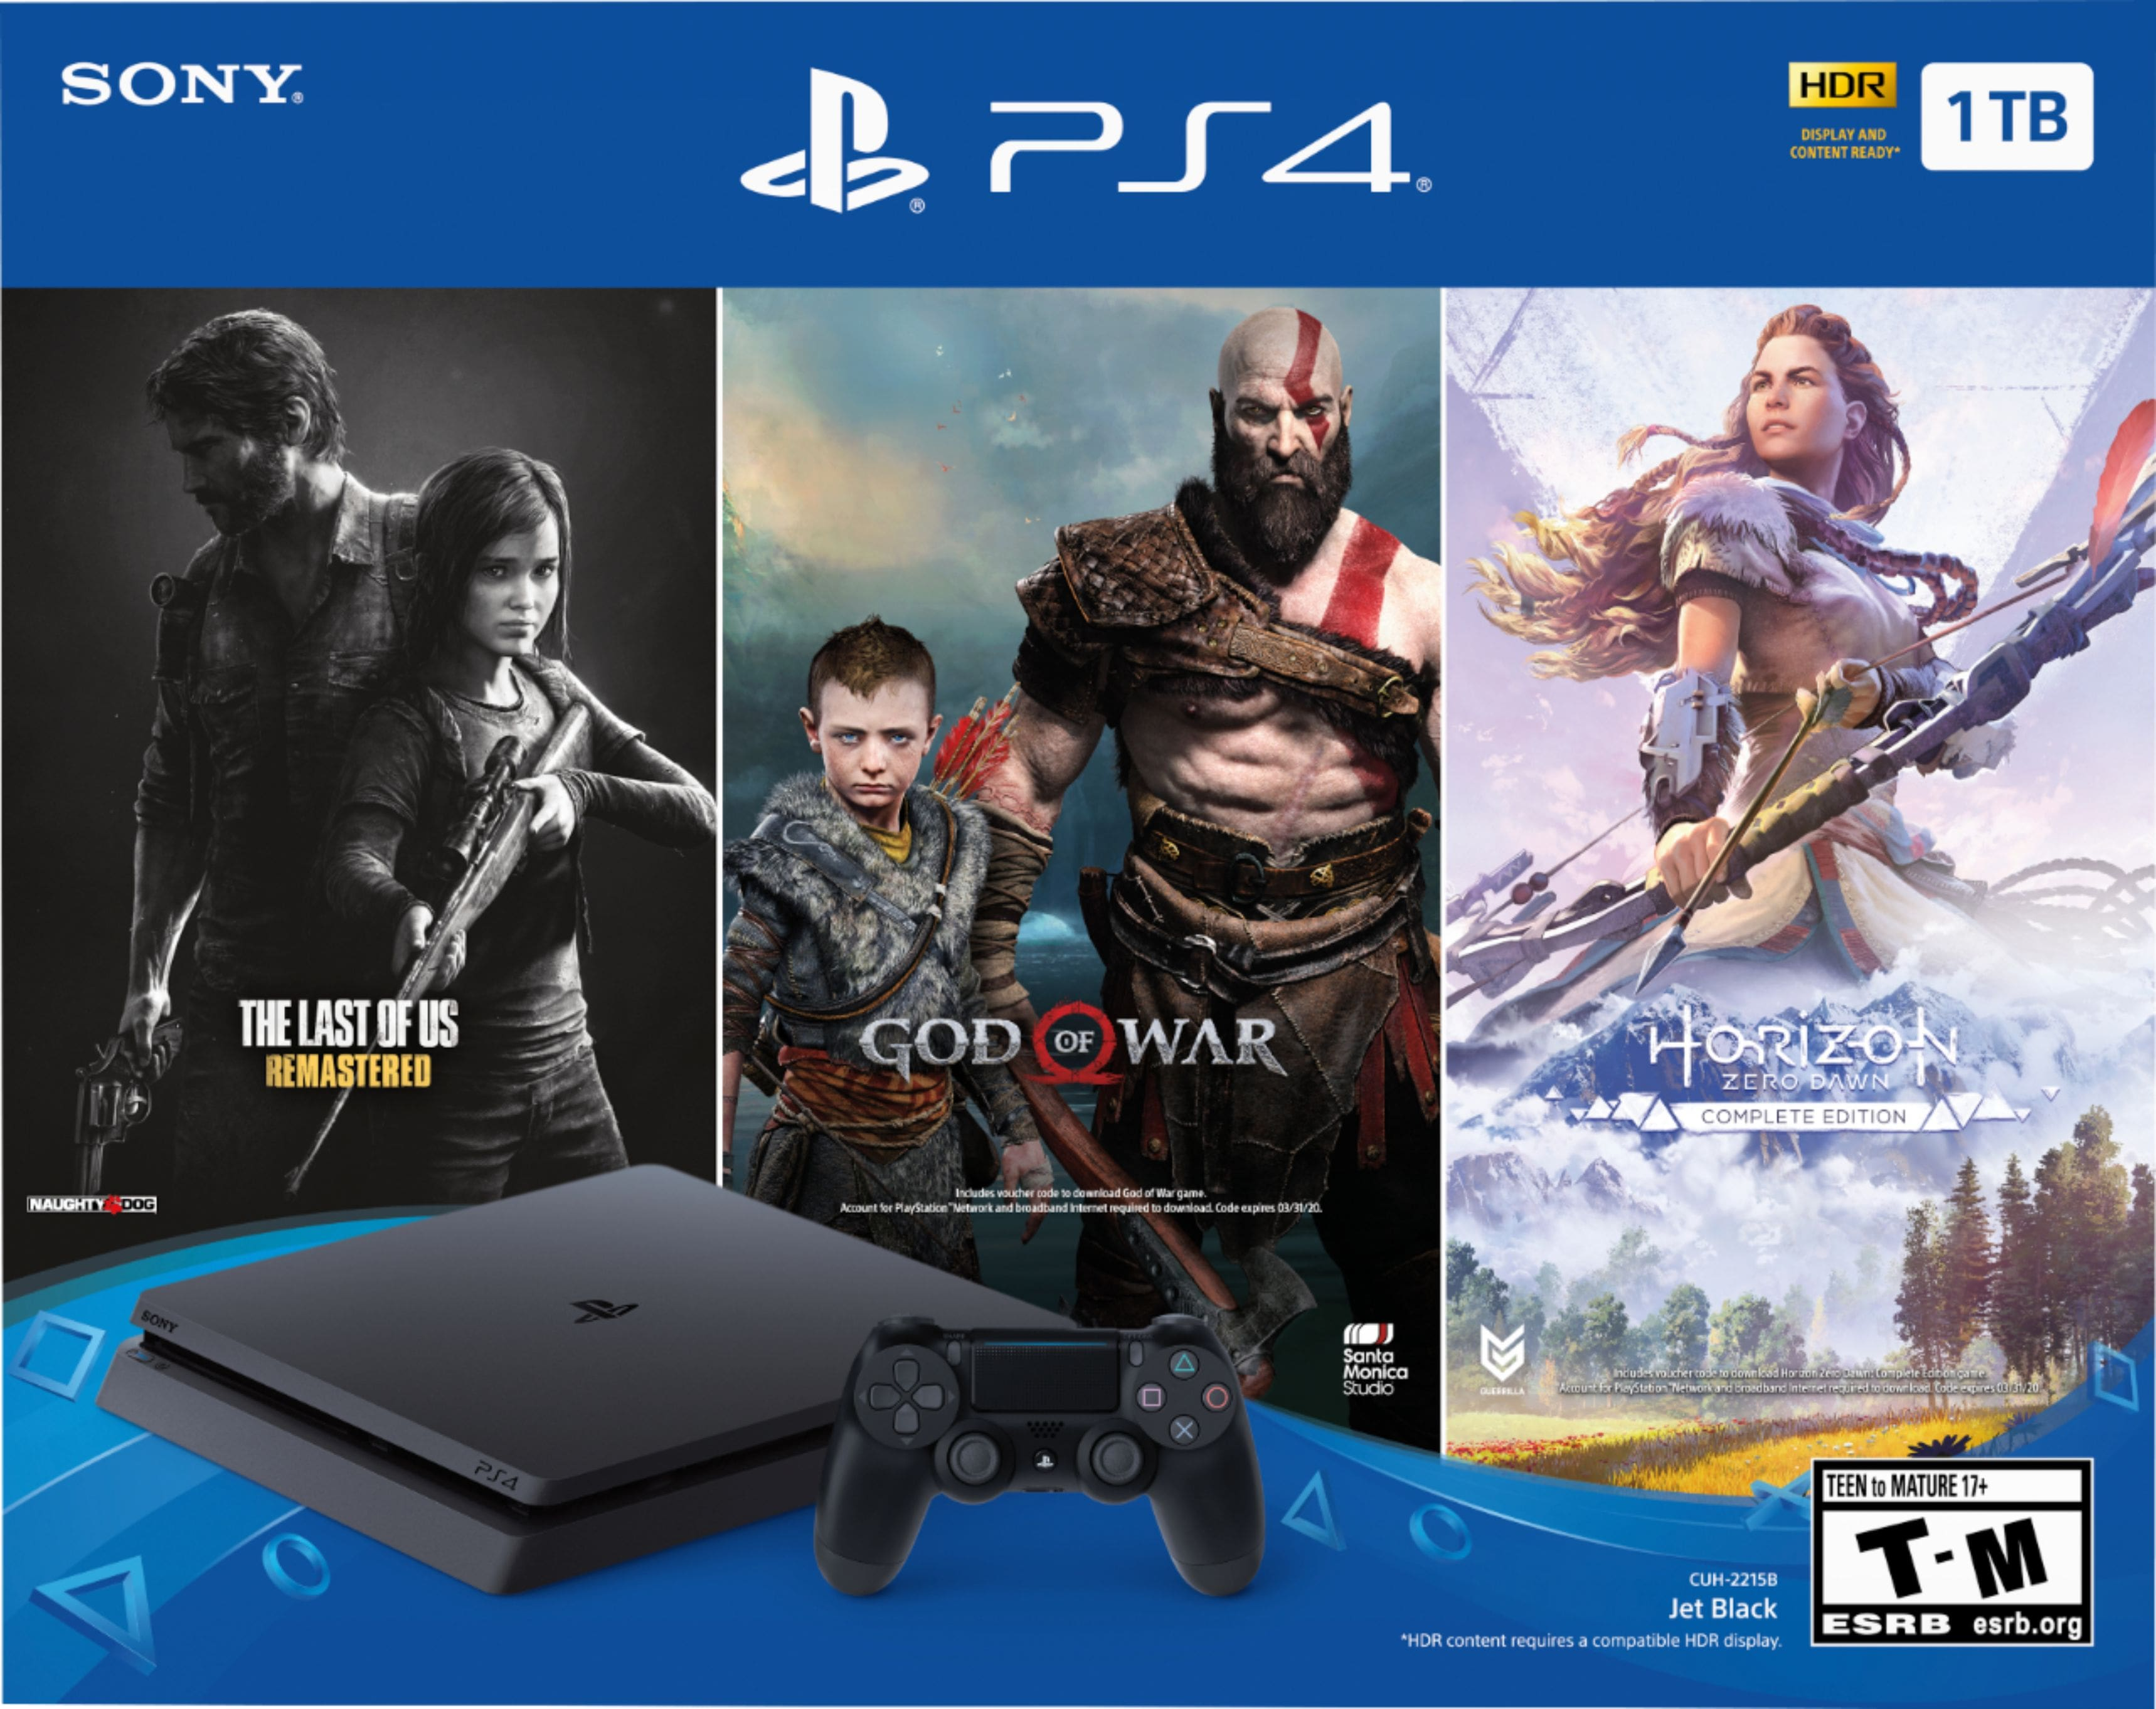 Sony - PlayStation 4 1TB Only on PlayStation Console Bundle - Jet Black $249.99